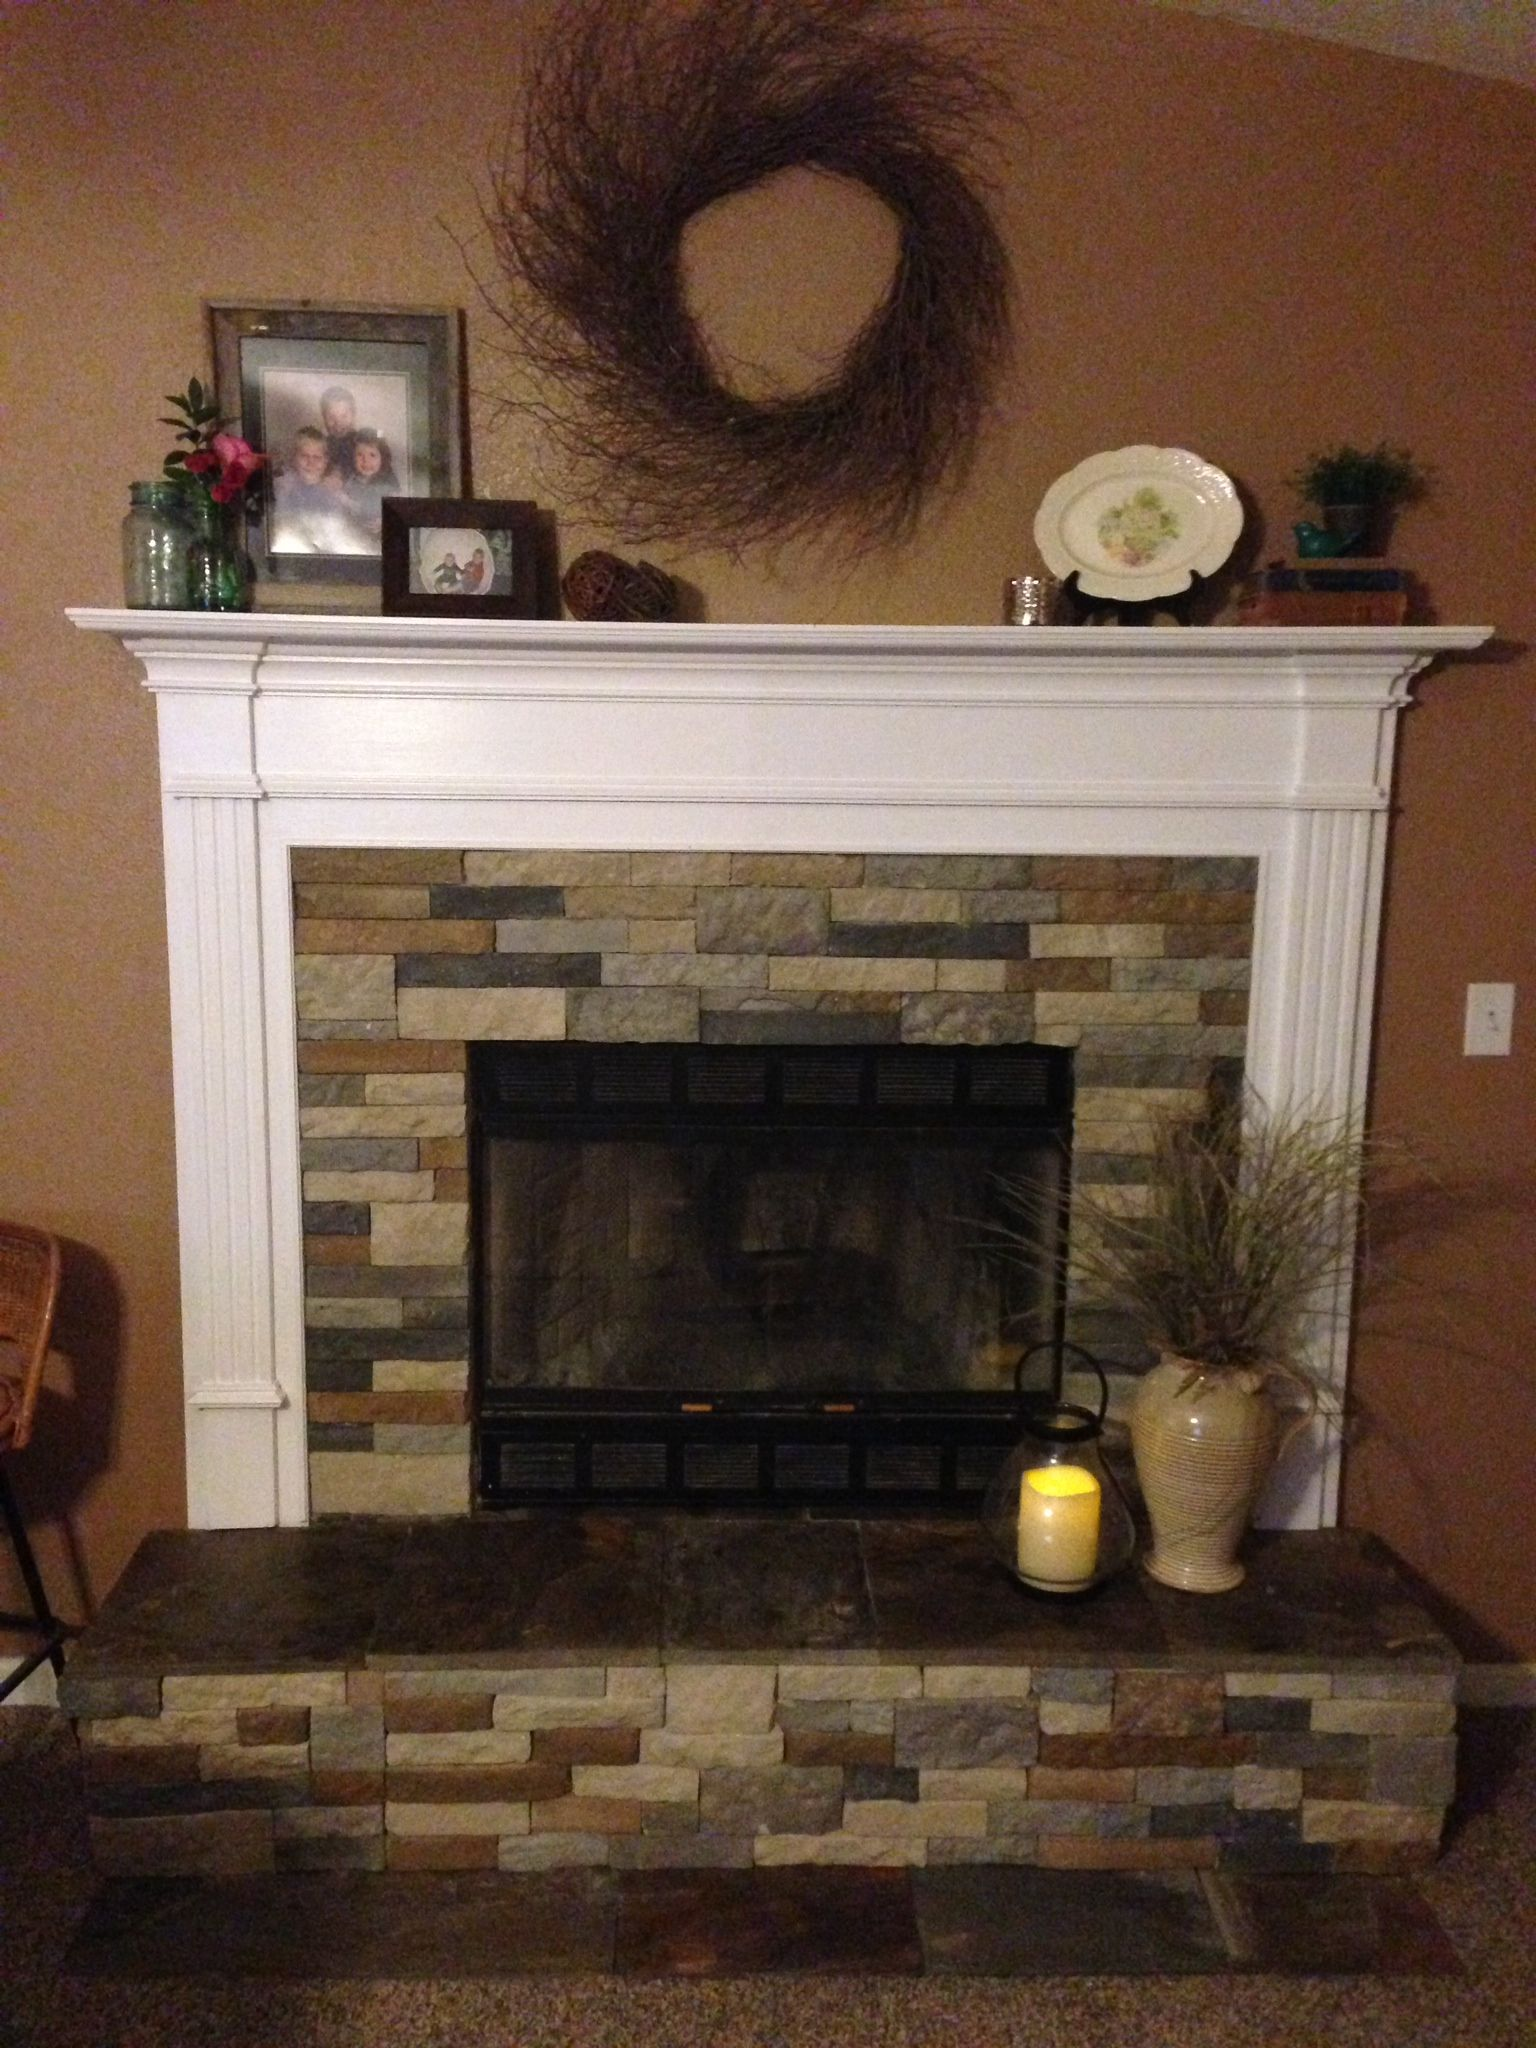 co s more canada fireplaces slim stoves napoleon crawford stand fireplace furniture electric tv lowe with wood lowes